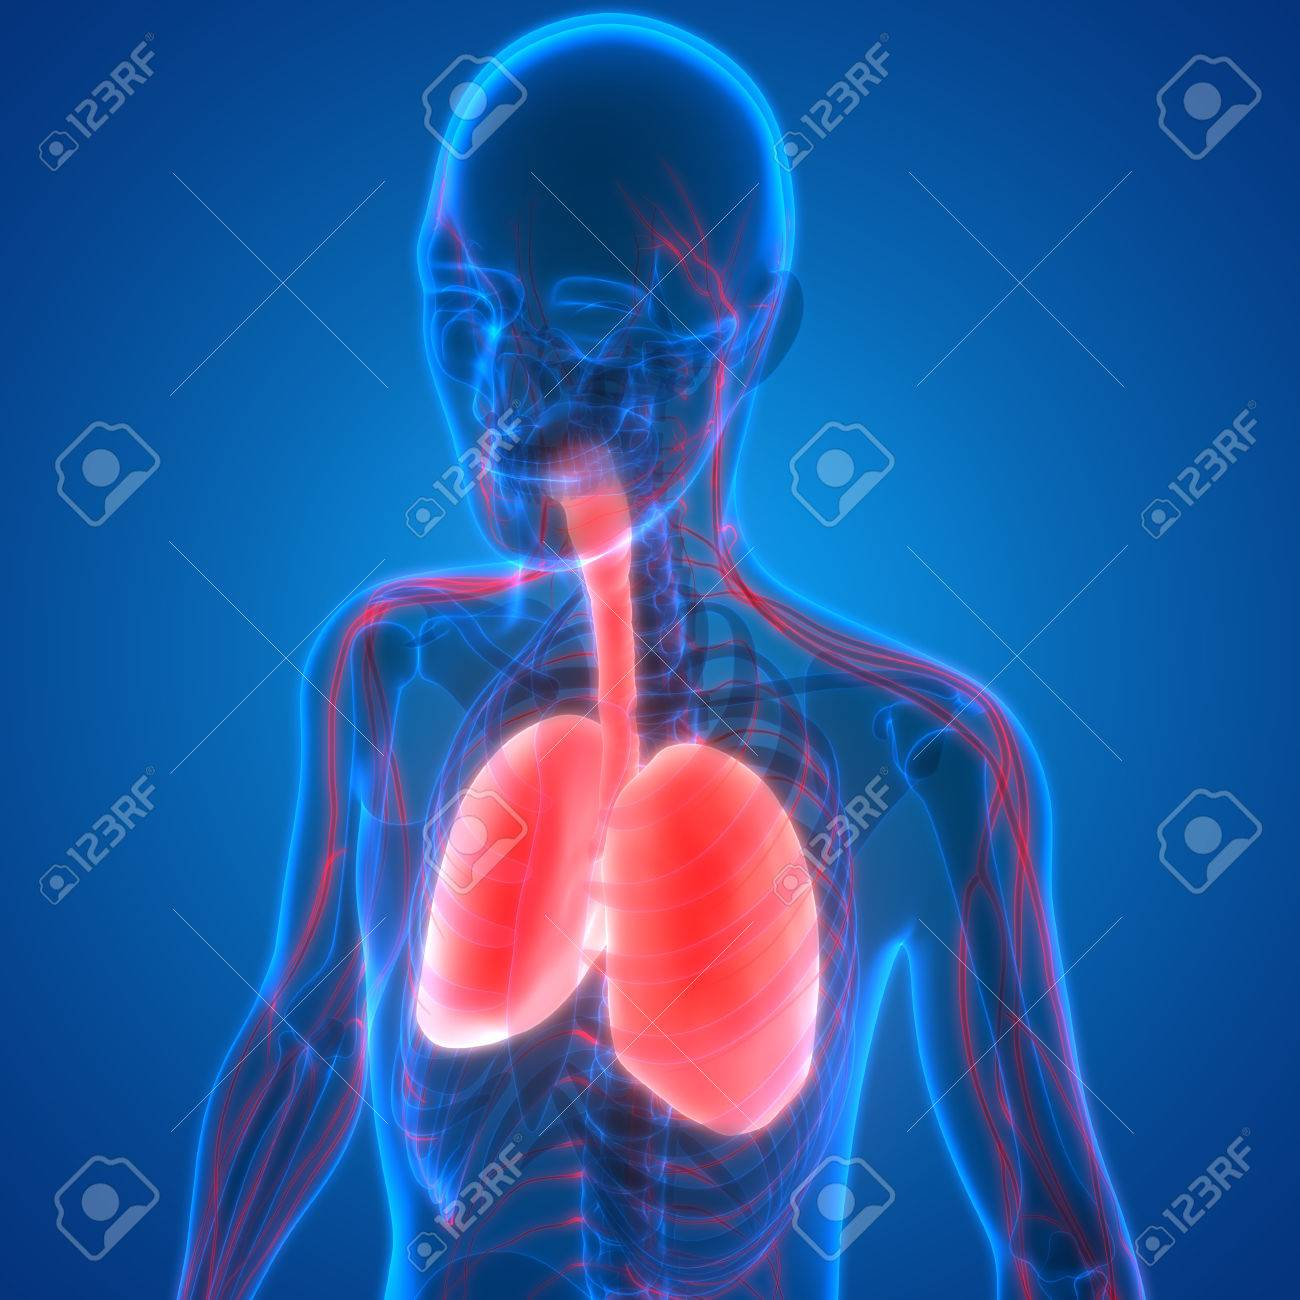 Human Body Organs (Lungs With Nervous System Anatomy) Stock Photo ...